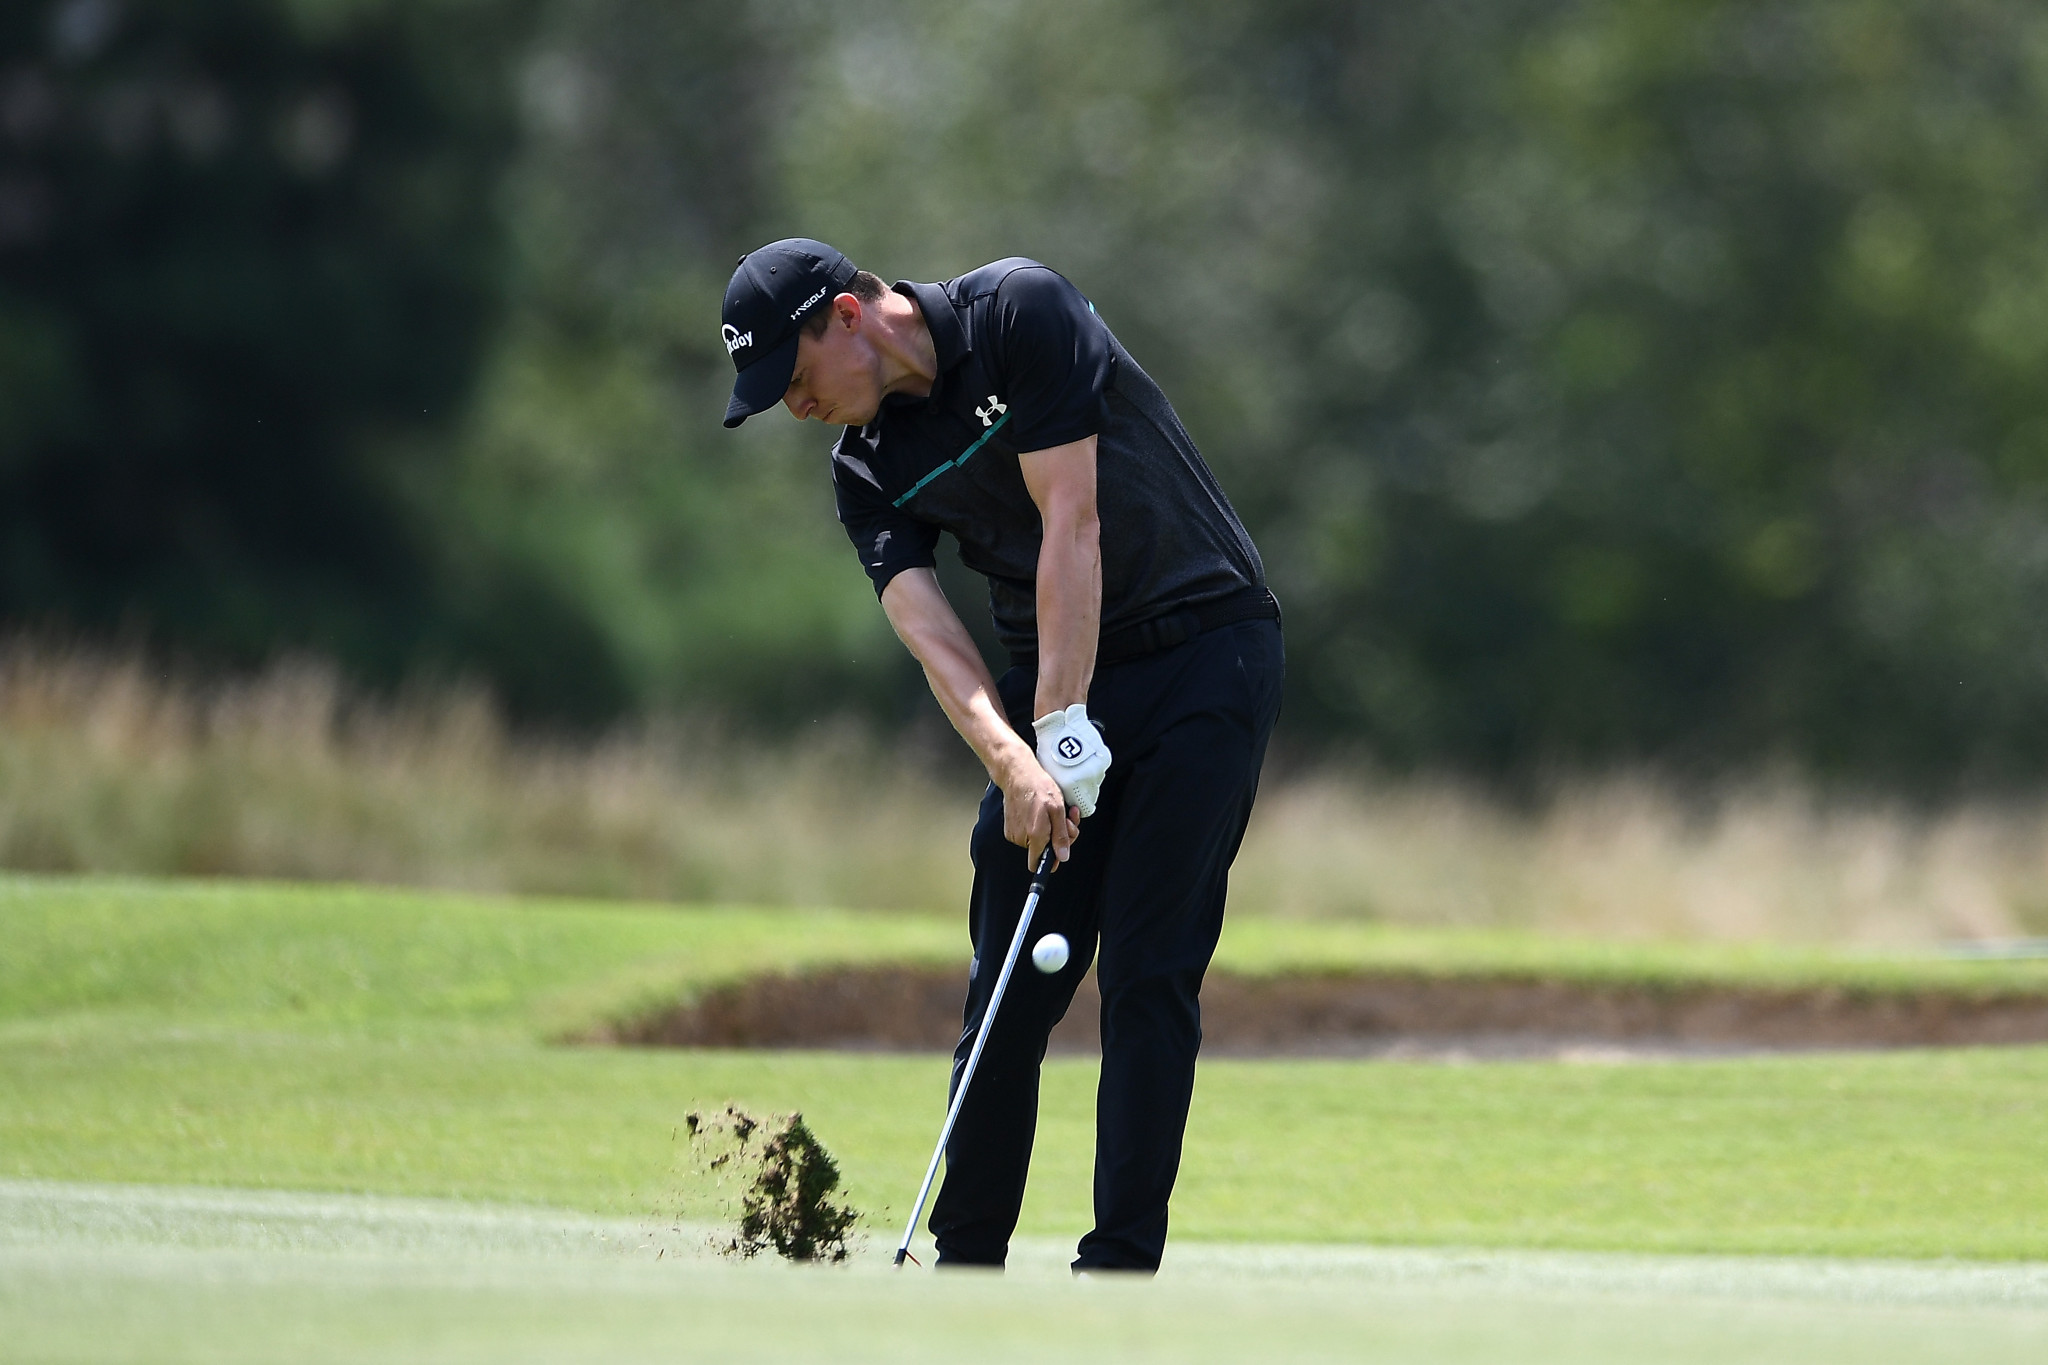 Matthew Fitzpatrick moves into two-shot lead at WGC-FedEx St. Jude Invitational